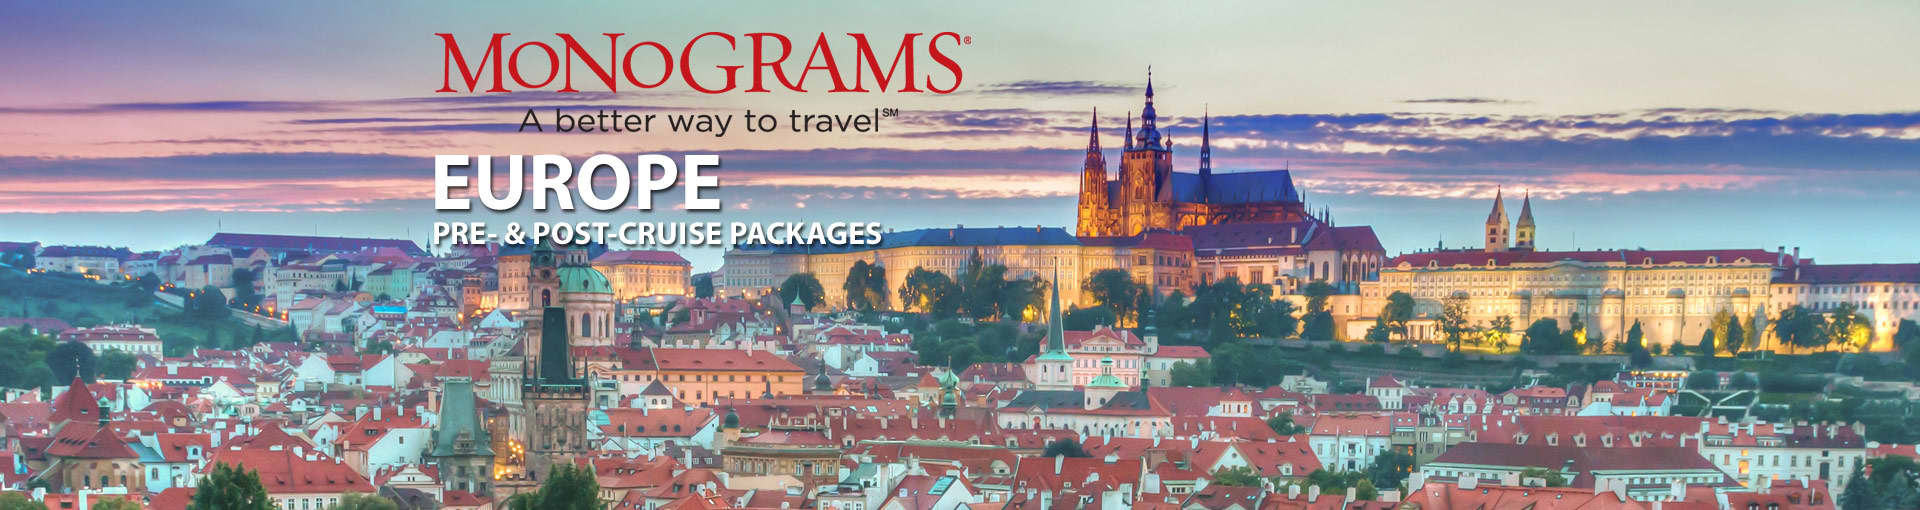 Monograms Europe Vacation Packages